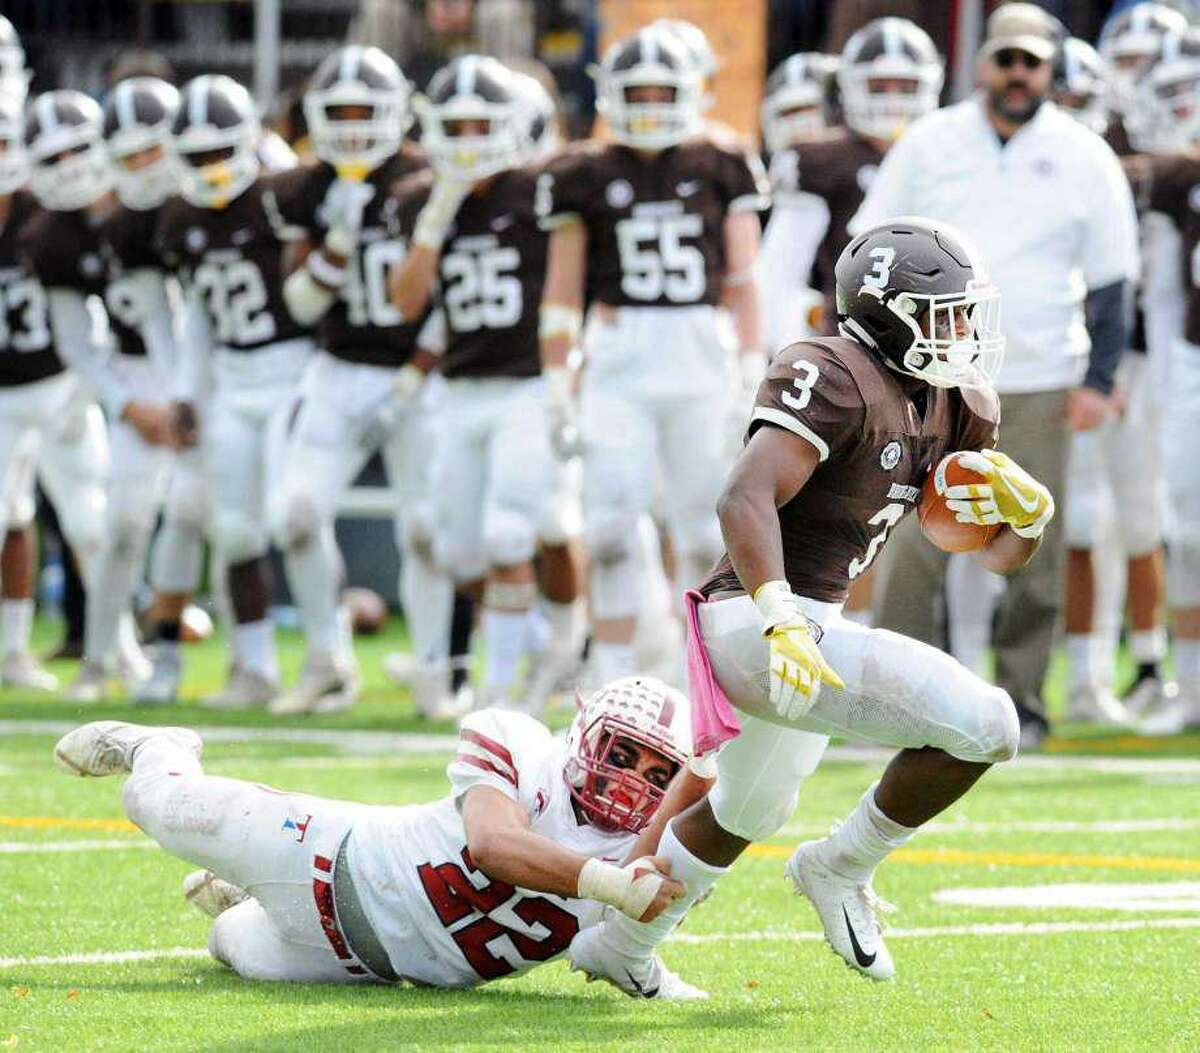 Brunswick's Jalen Madison, who had a big rushing game last year against Hotchkiss School, led the Bruins' ground attack in their season-opening road win over Loomis Chaffee School on Saturday night.